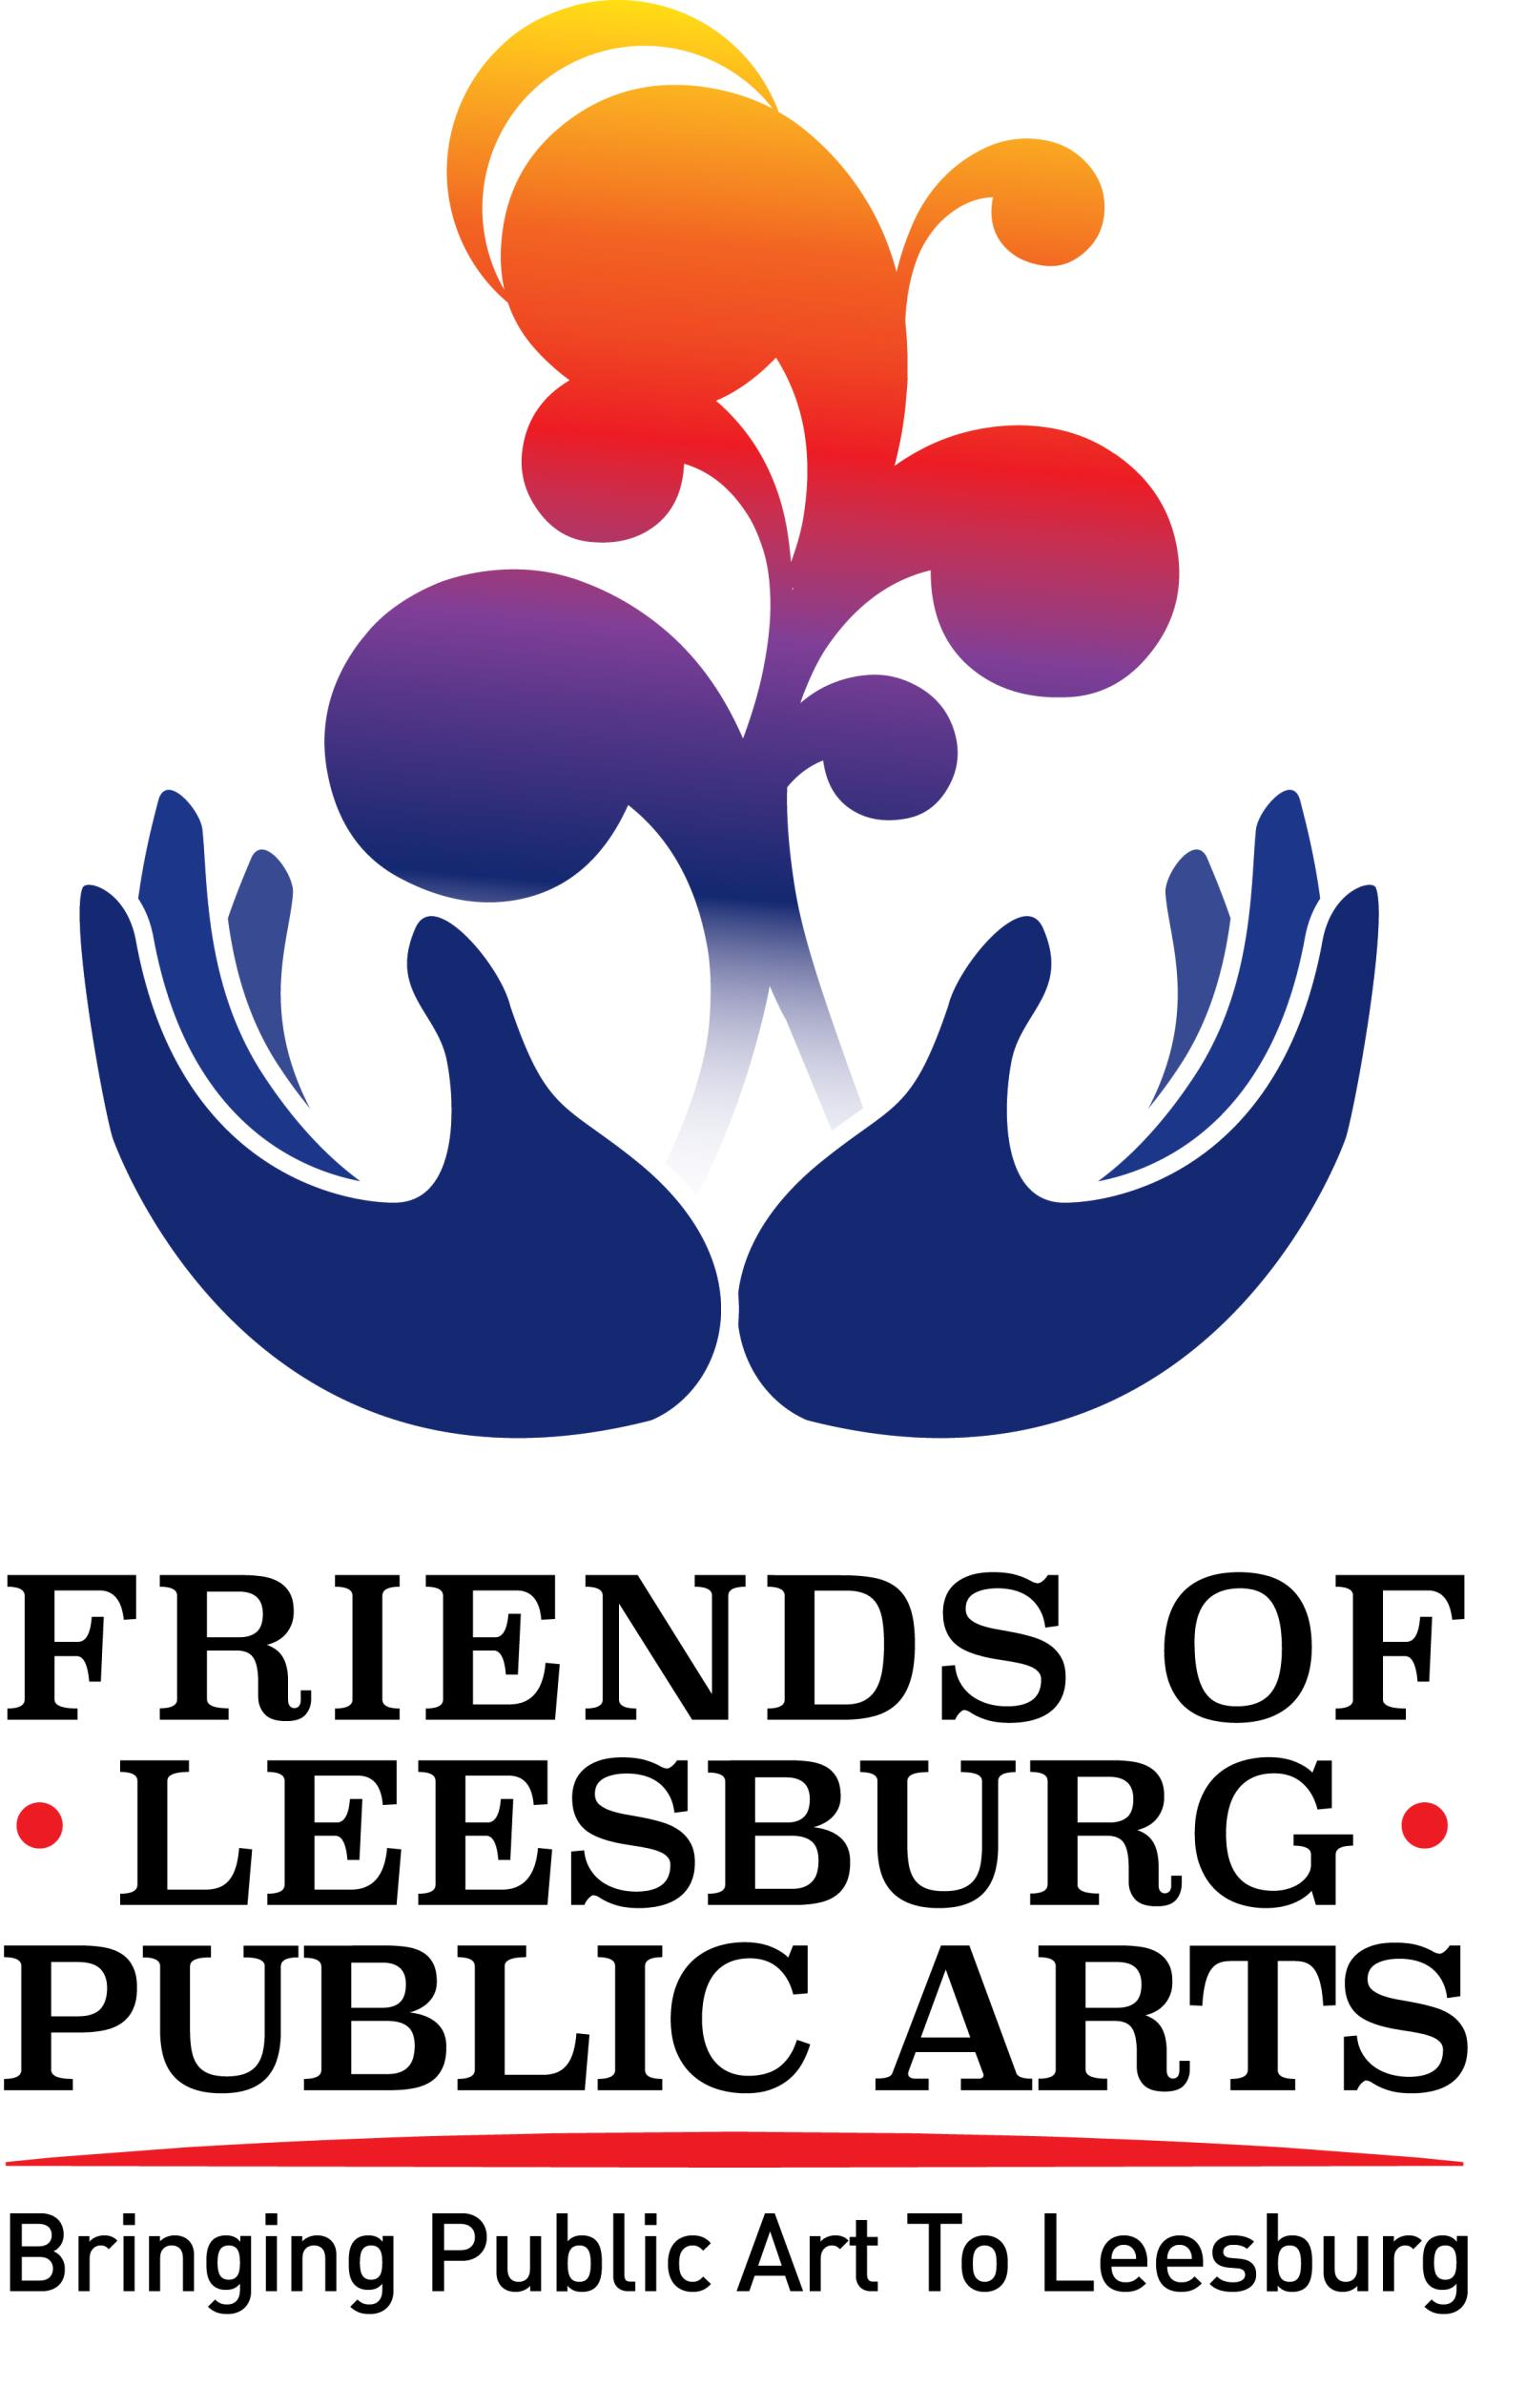 Friends of Leesburg Public Arts logo